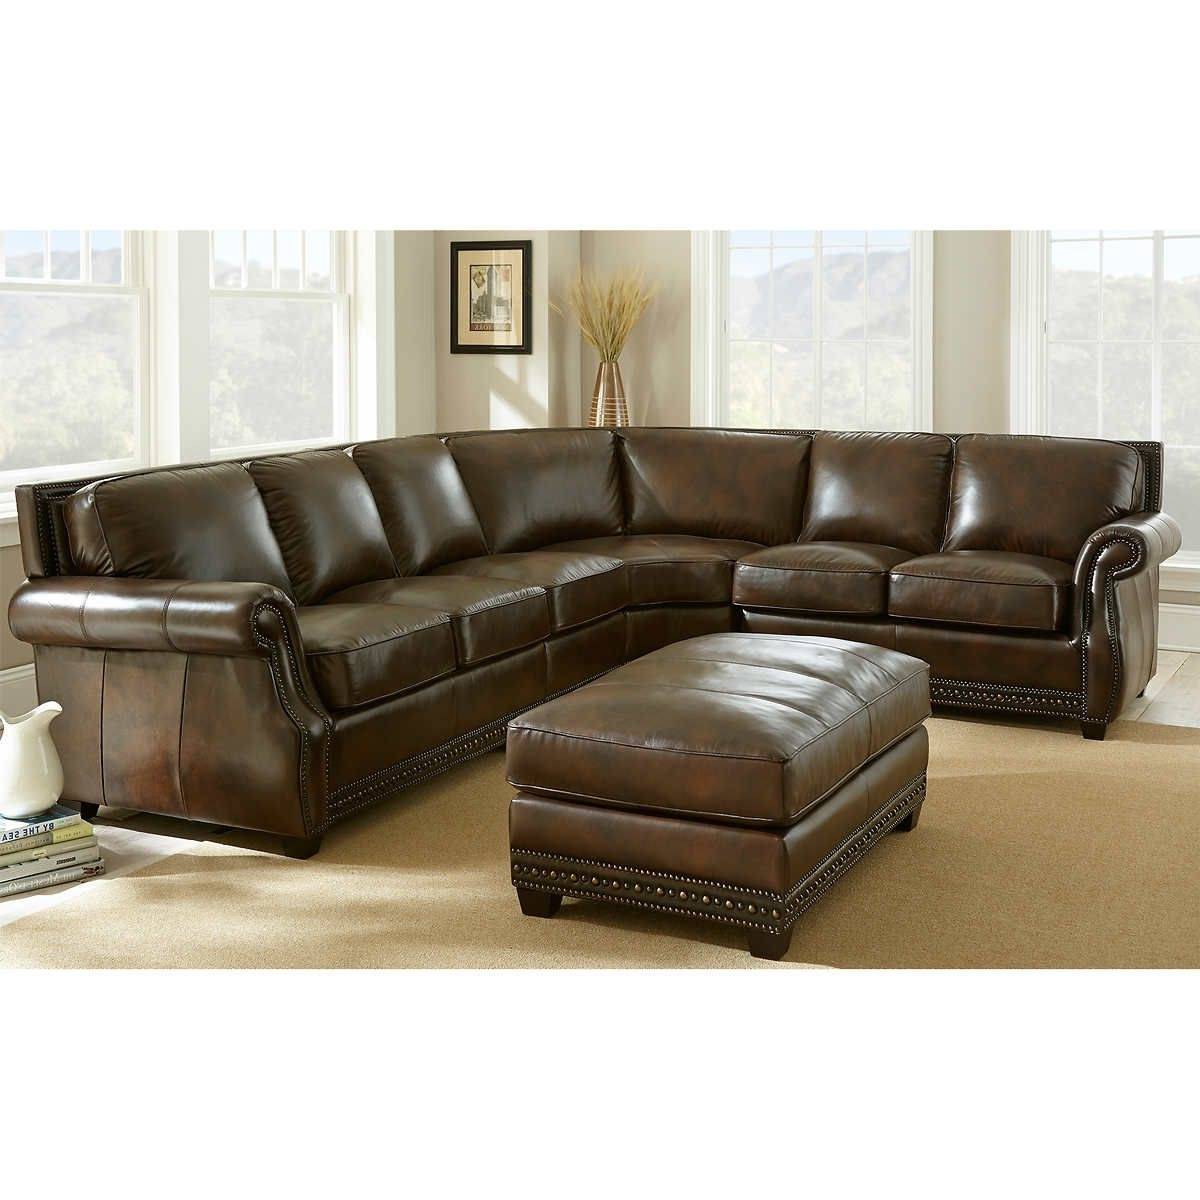 Greenville Sc Sectional Sofas Pertaining To Favorite Awesome Leather Couch Sectional , New Leather Couch Sectional  (View 9 of 20)